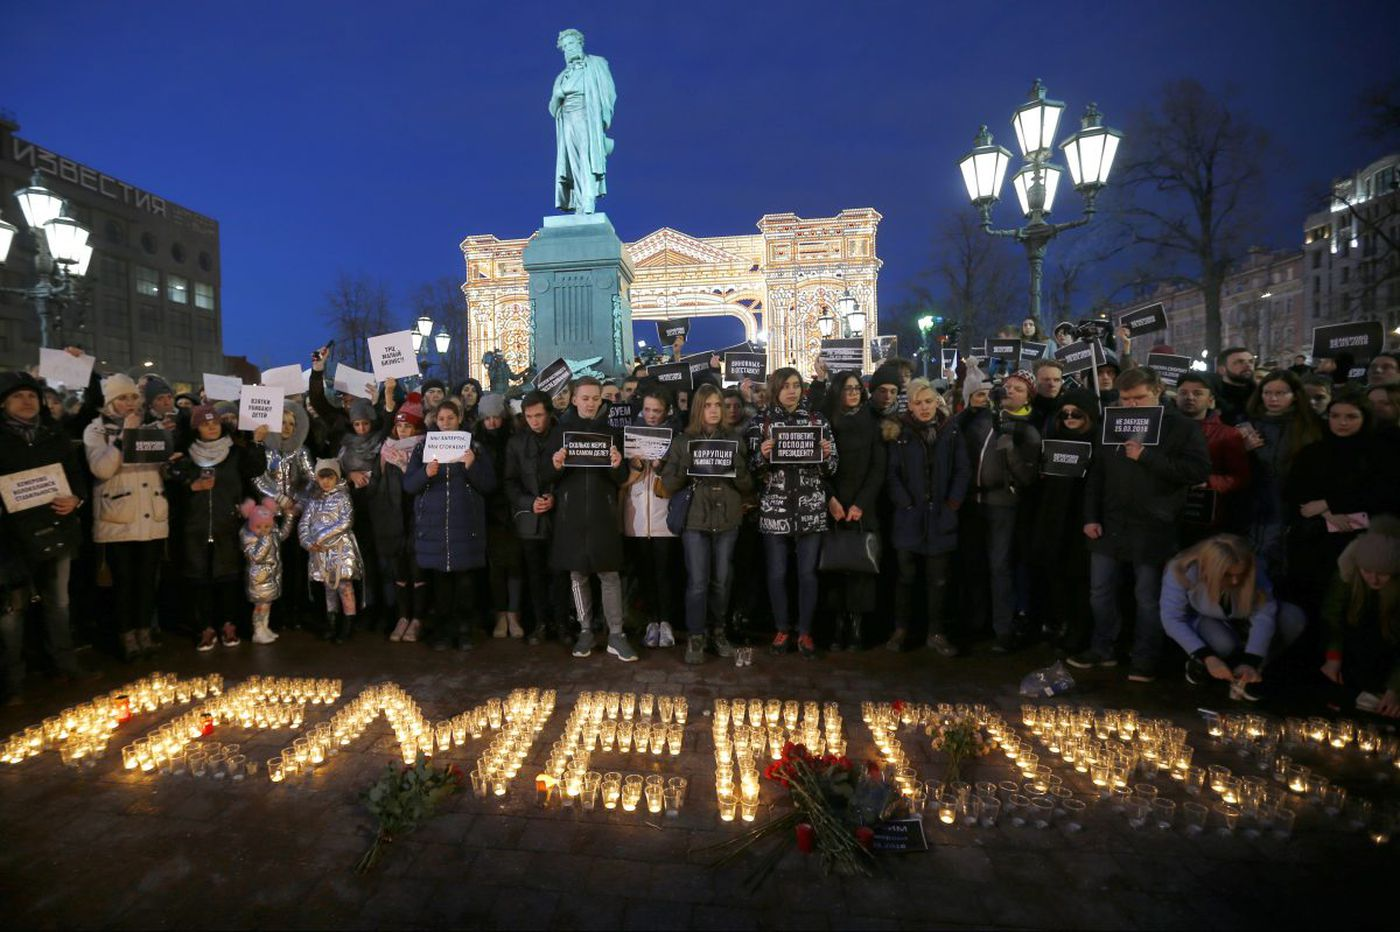 What killer fire in Kemerovo tells us about Russia and Putin | Trudy Rubin